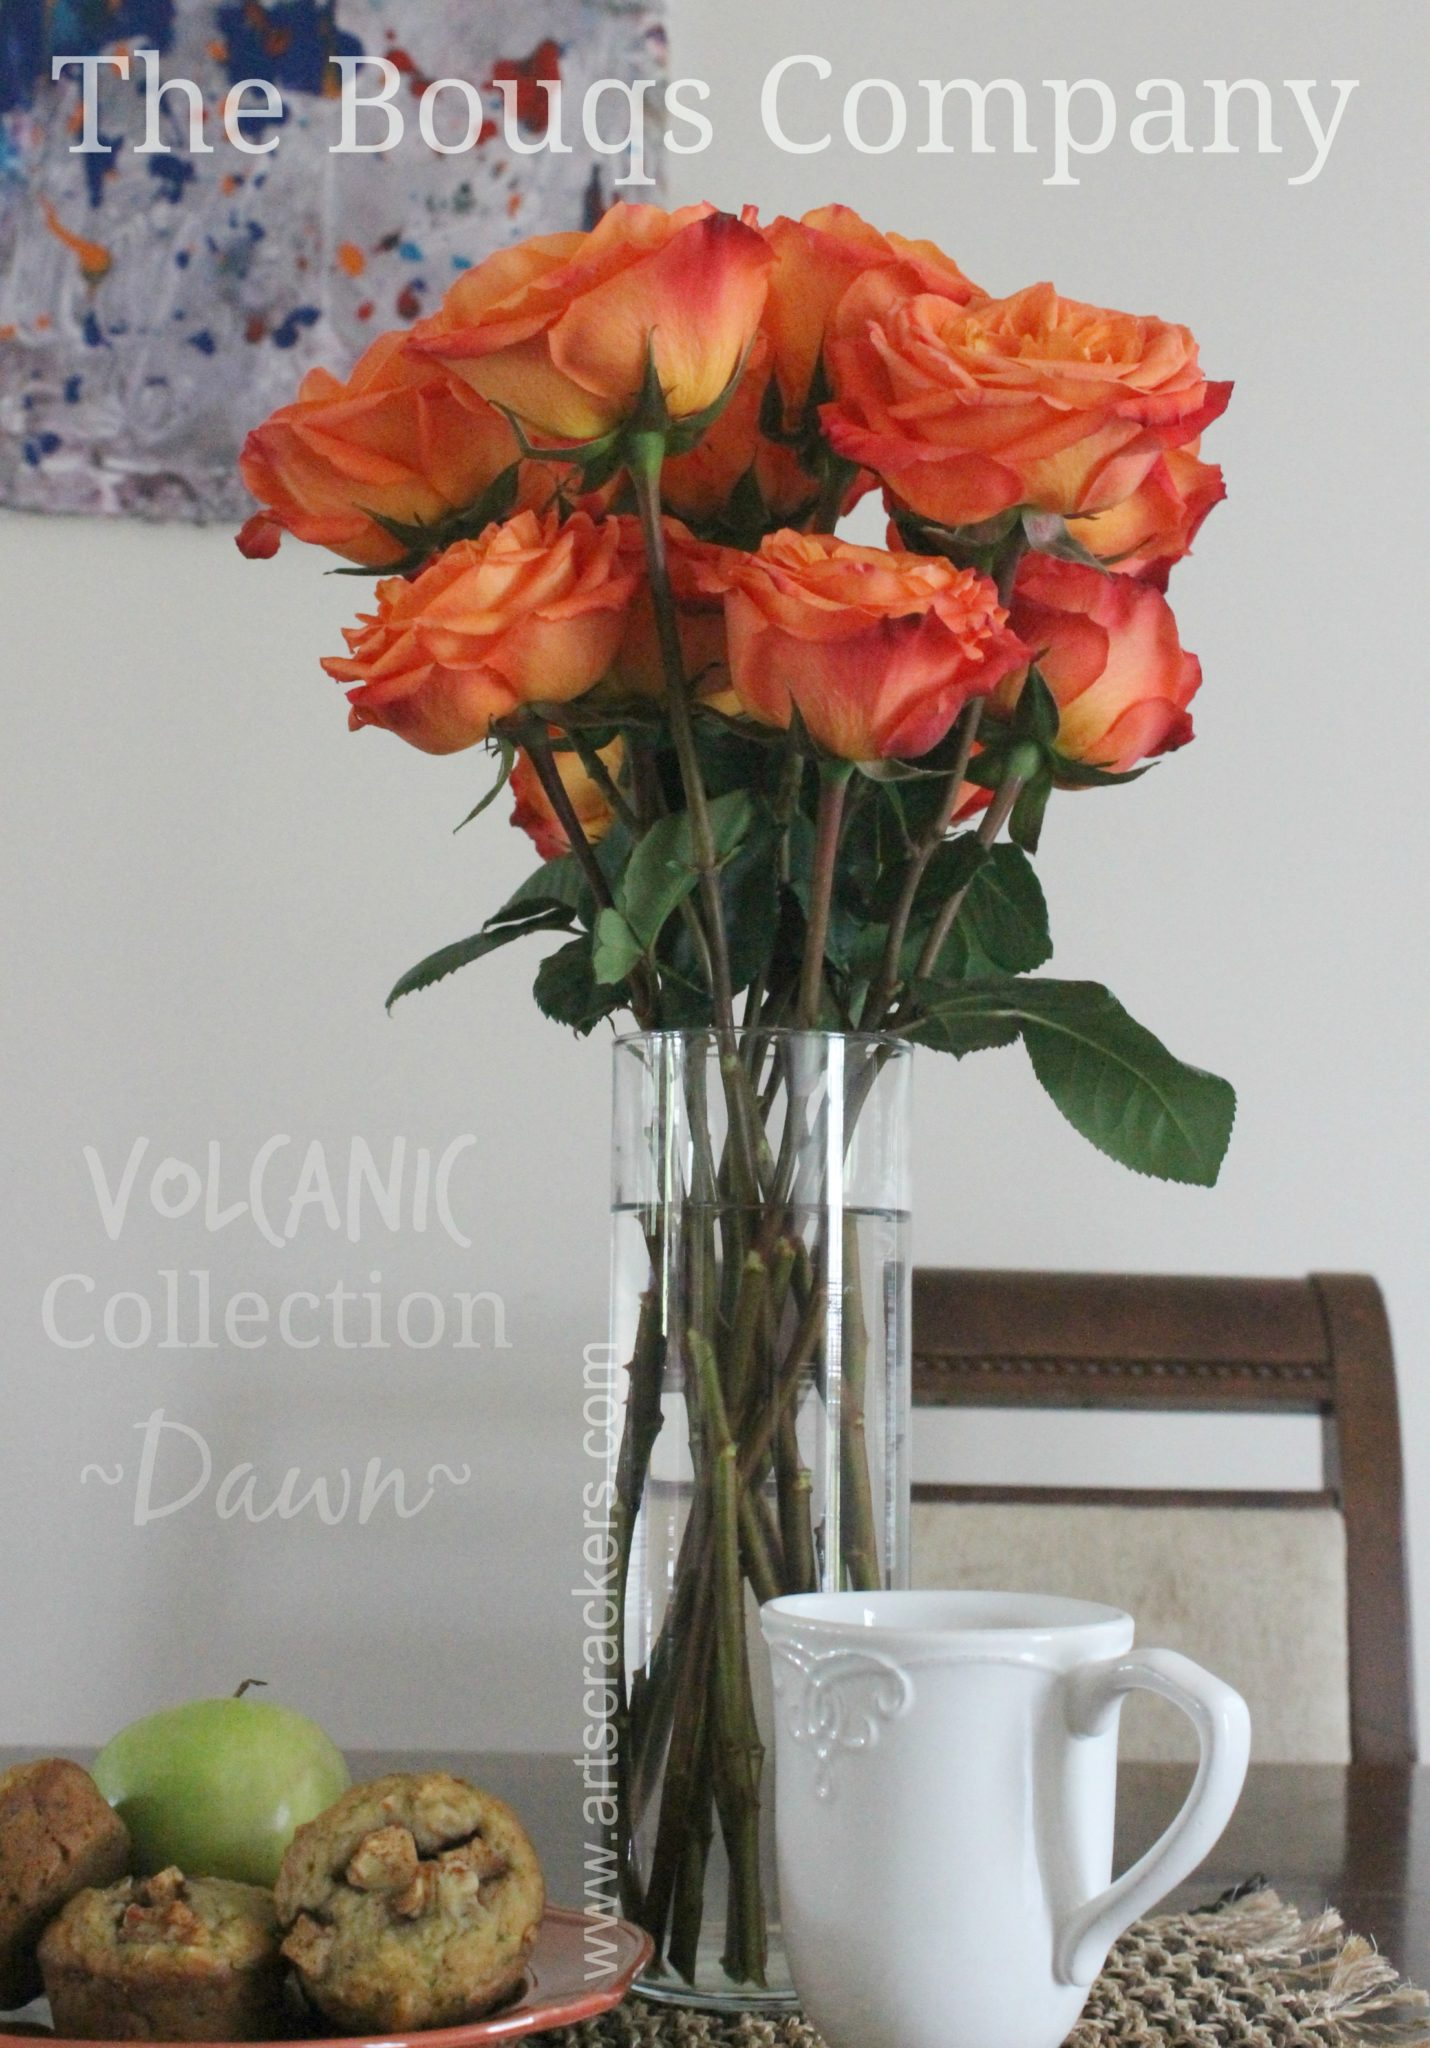 The Bouqs Company Volcanic Collection Dawn